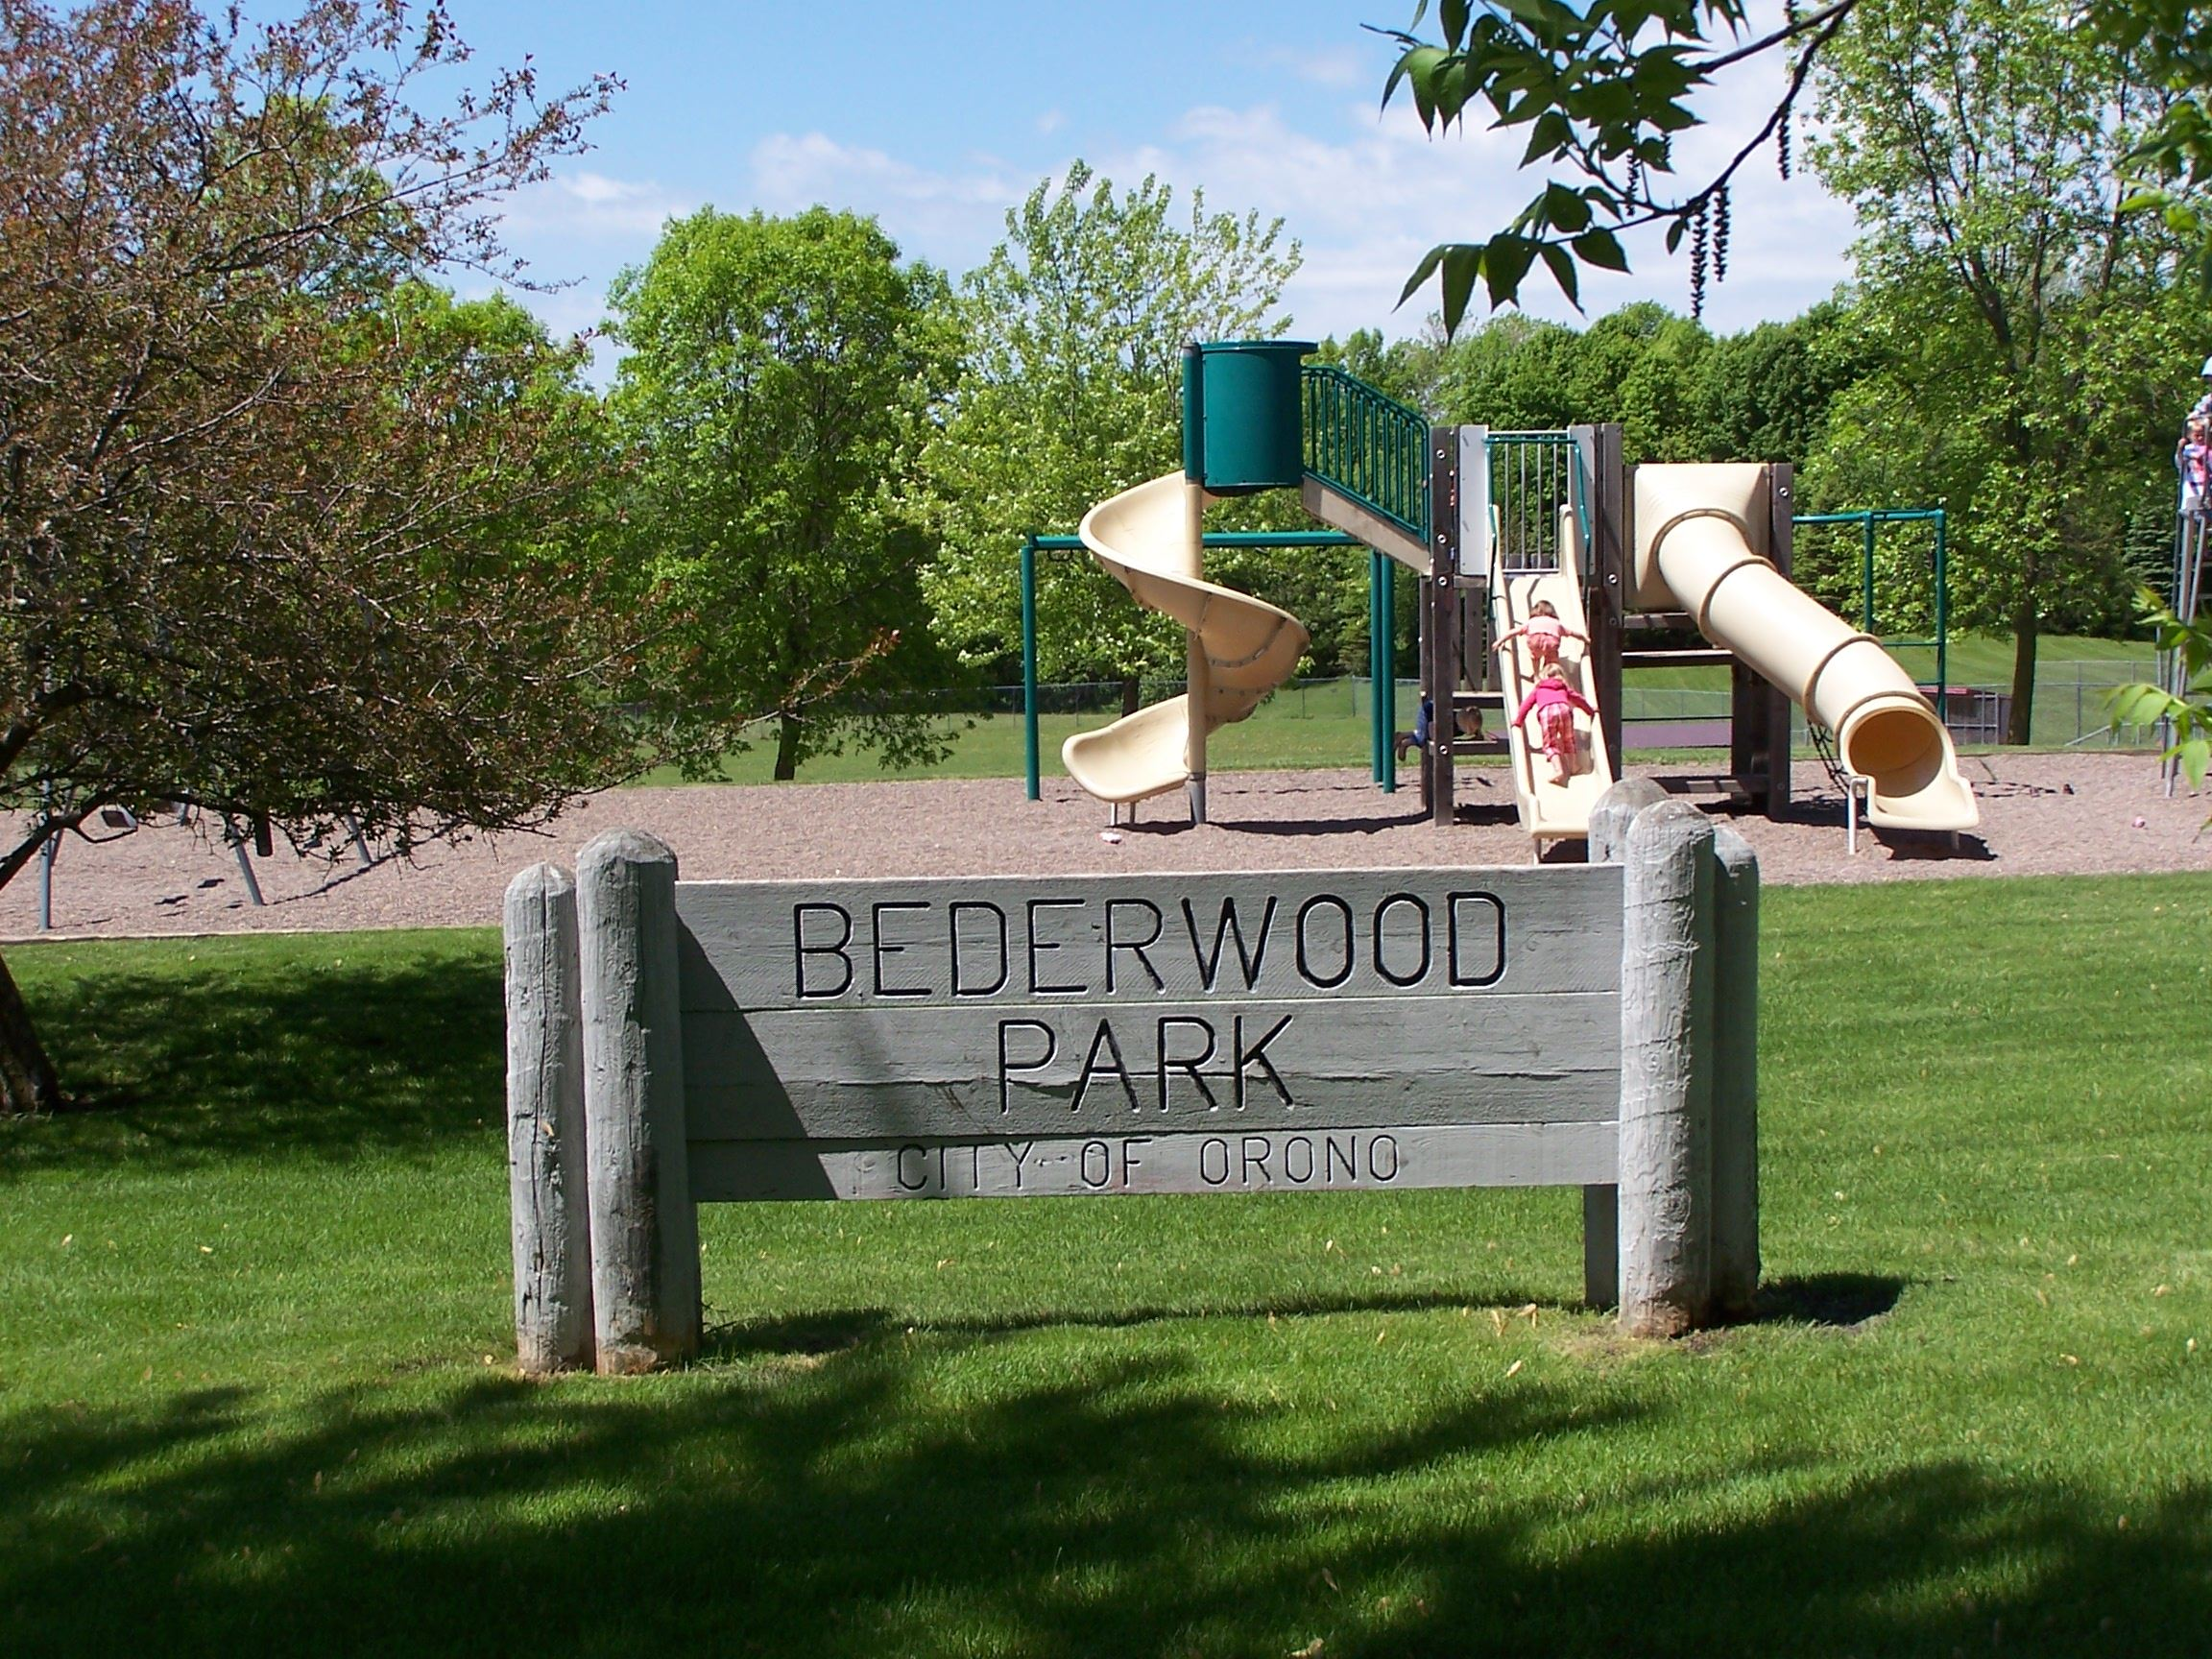 Bederwood Park sign and playground